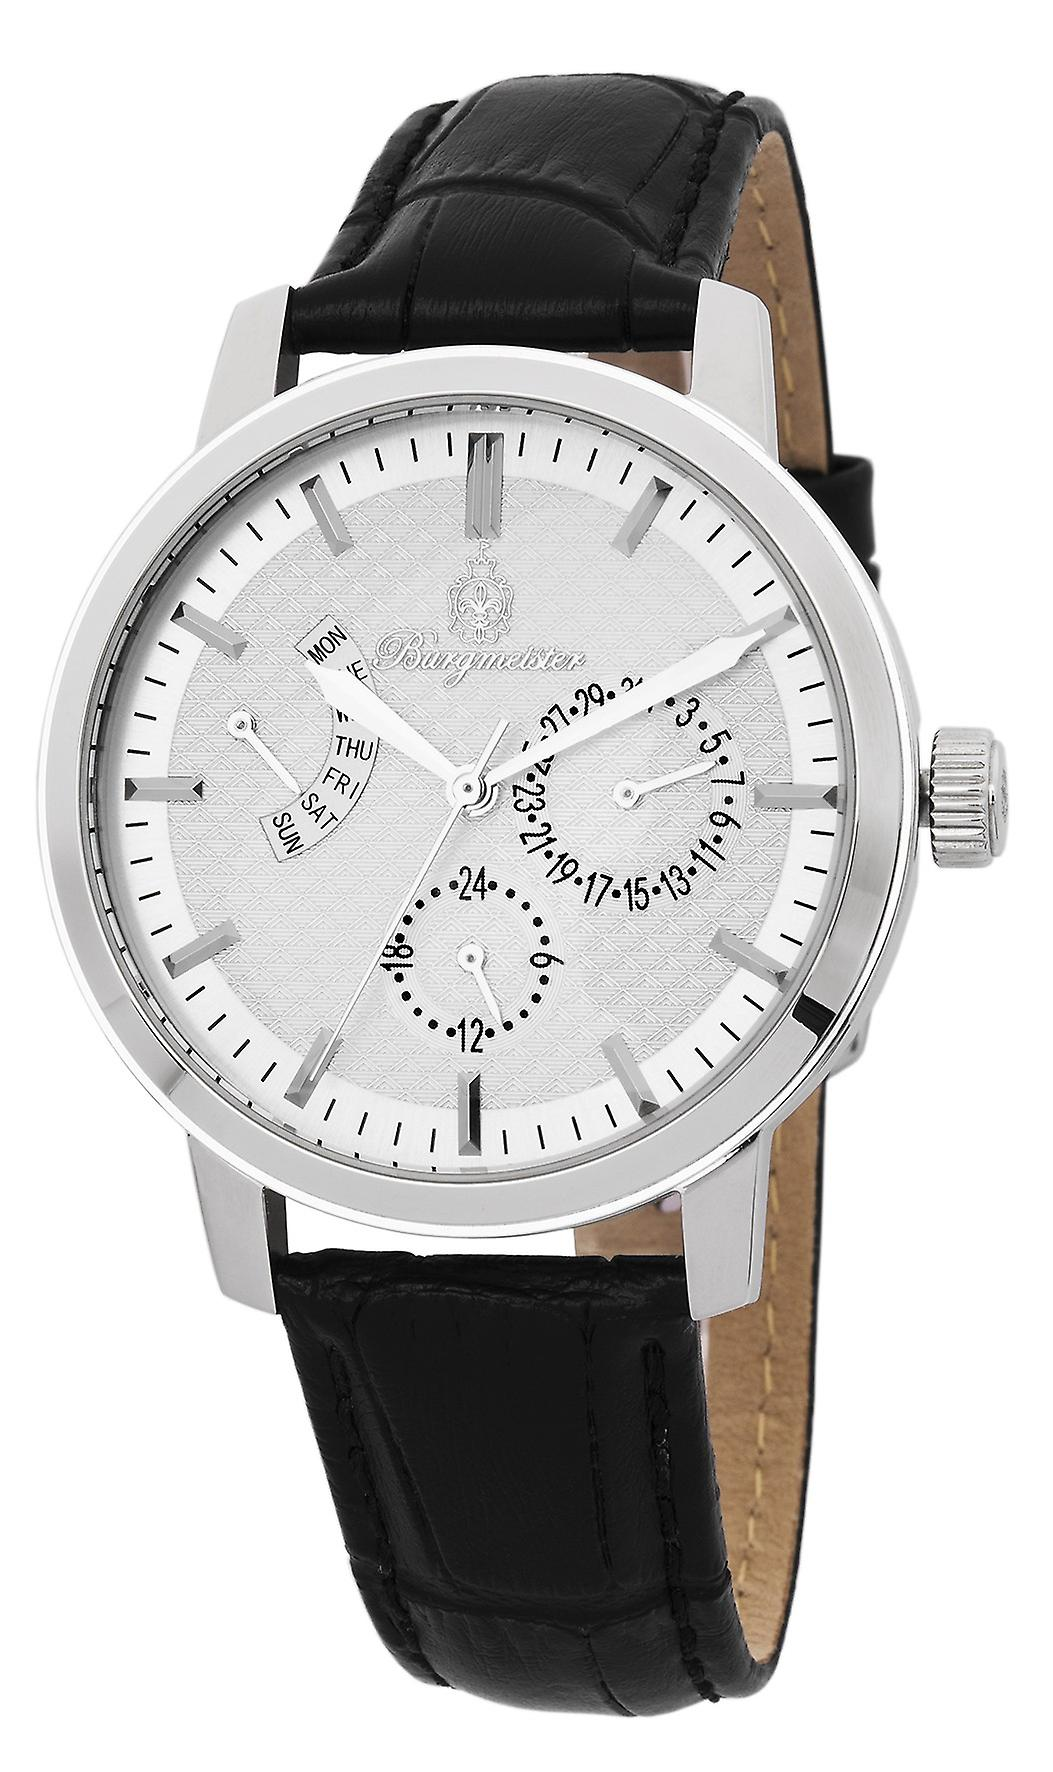 Burgmeister ladies quartz watch Baton Rouge, BM218-112